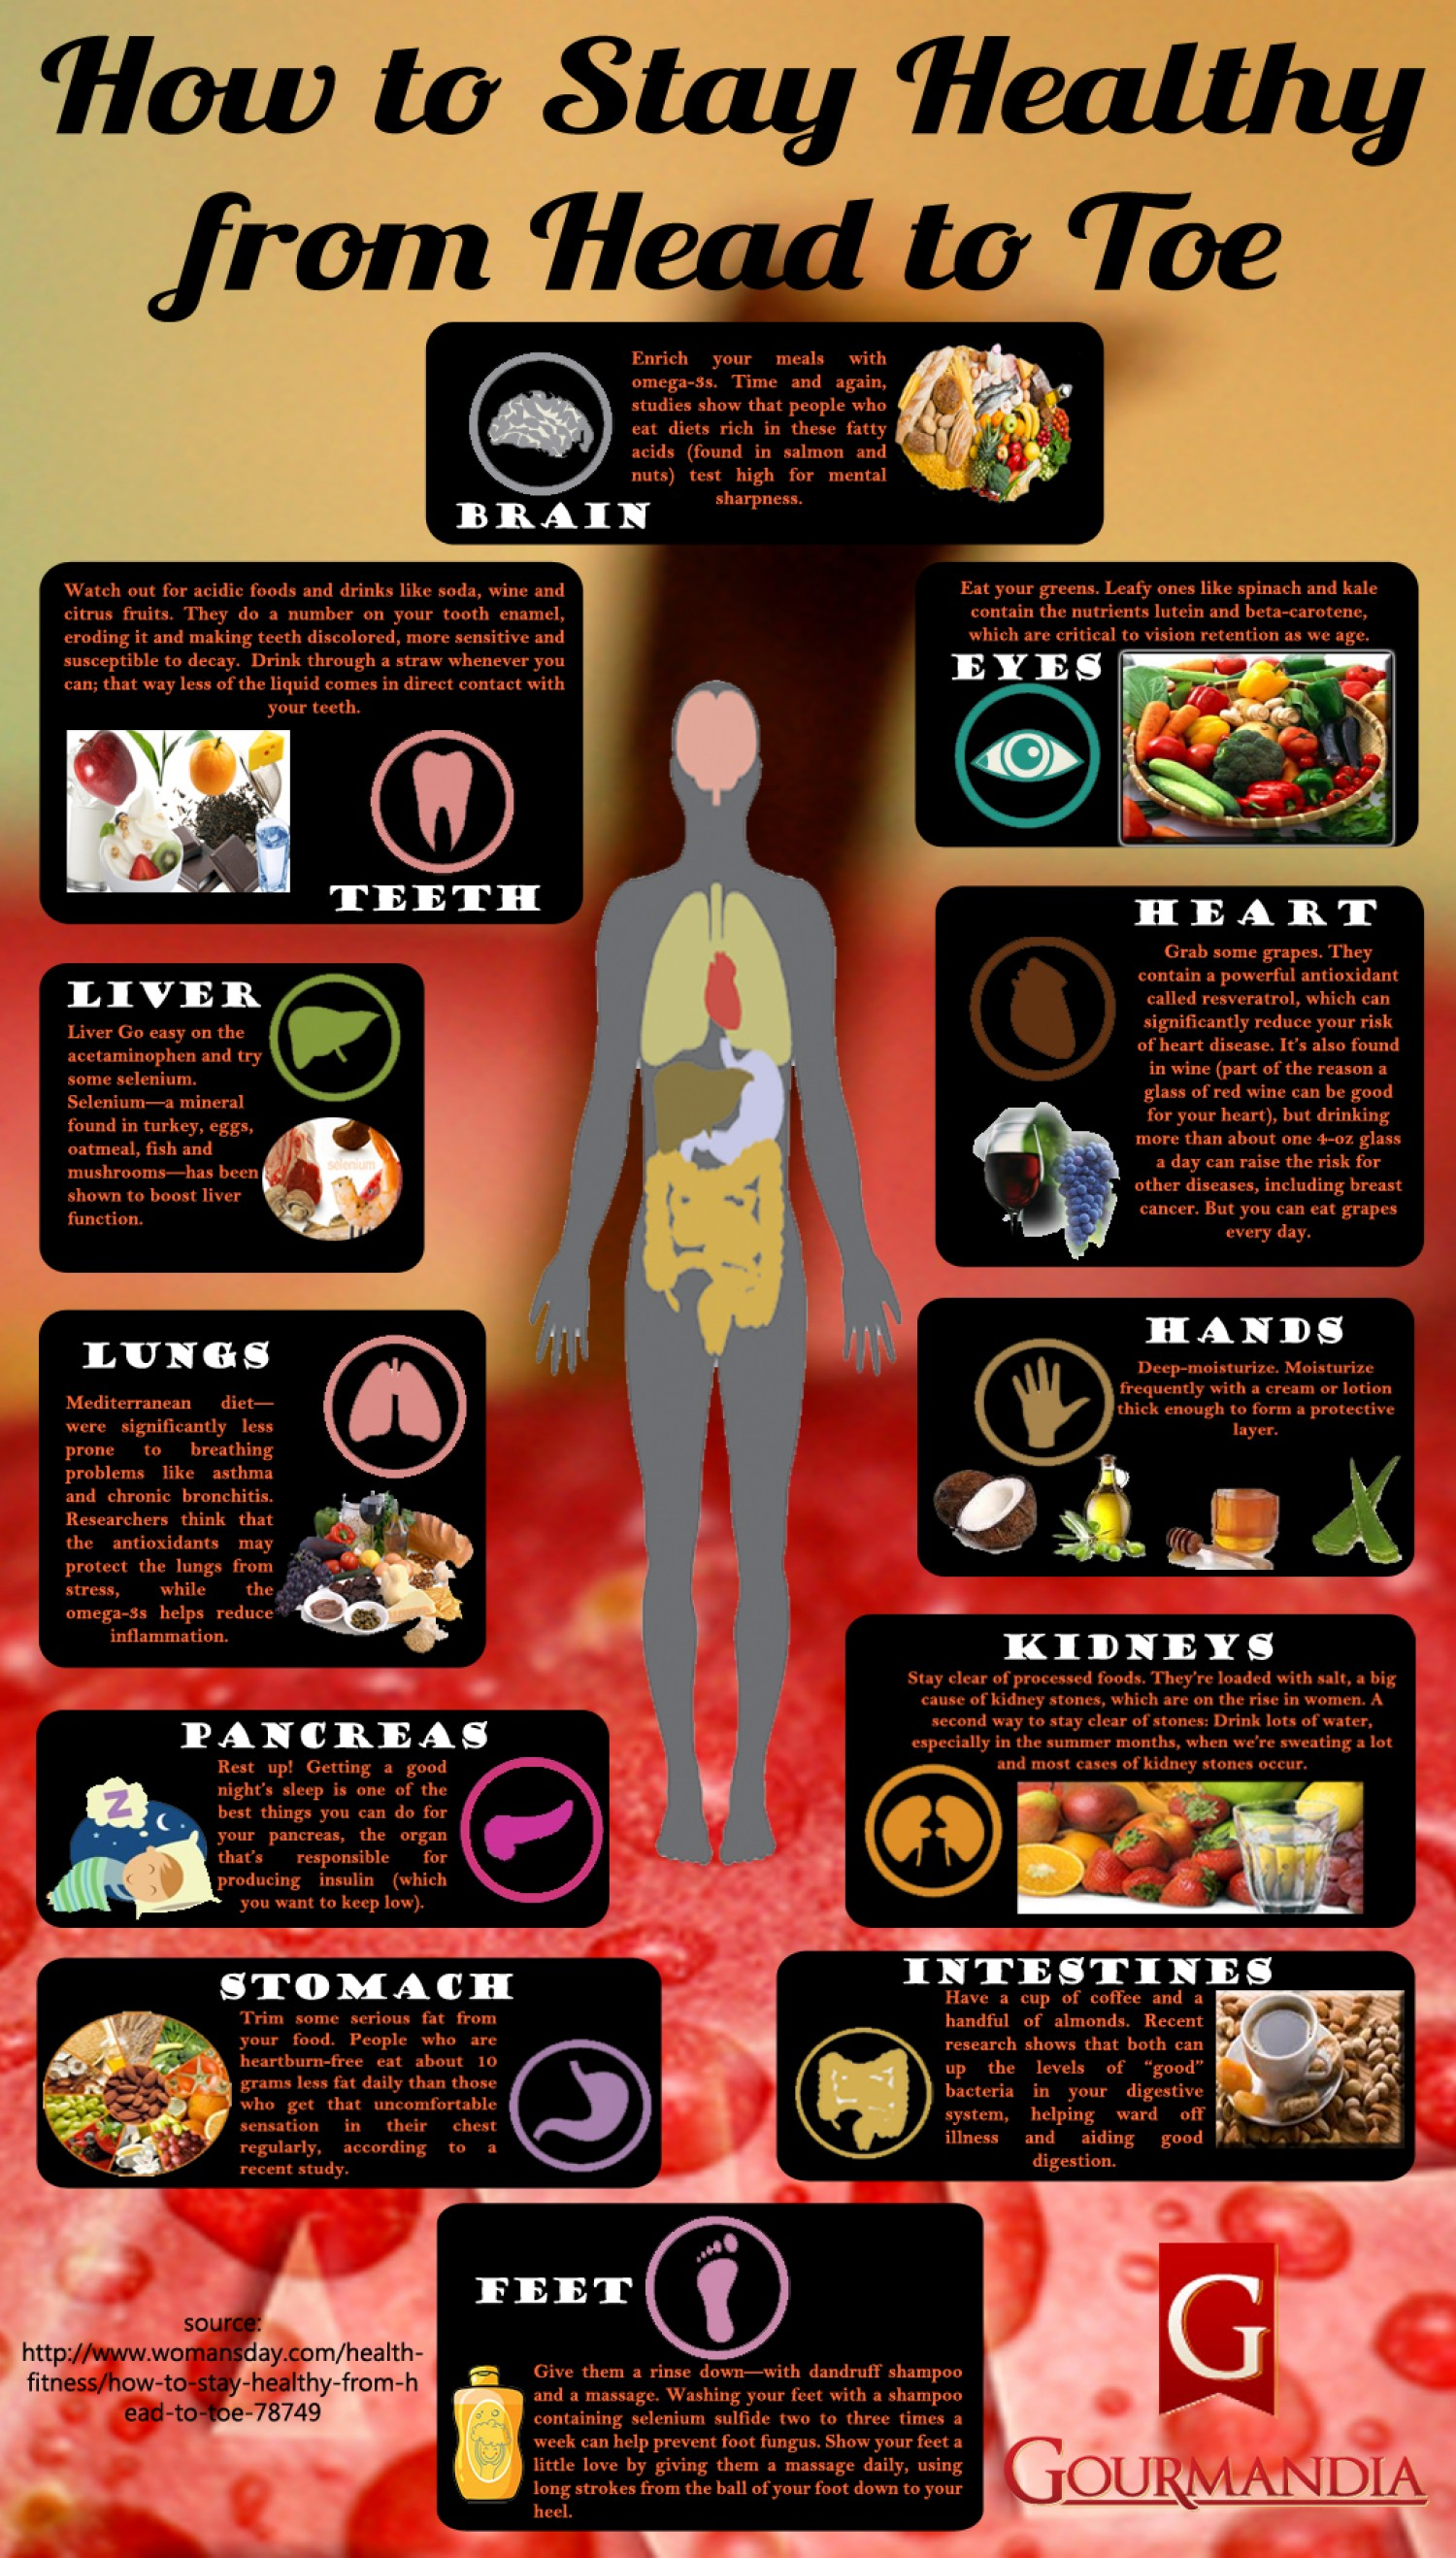 Here's How You Can Take Care Of Your Body - Infographic